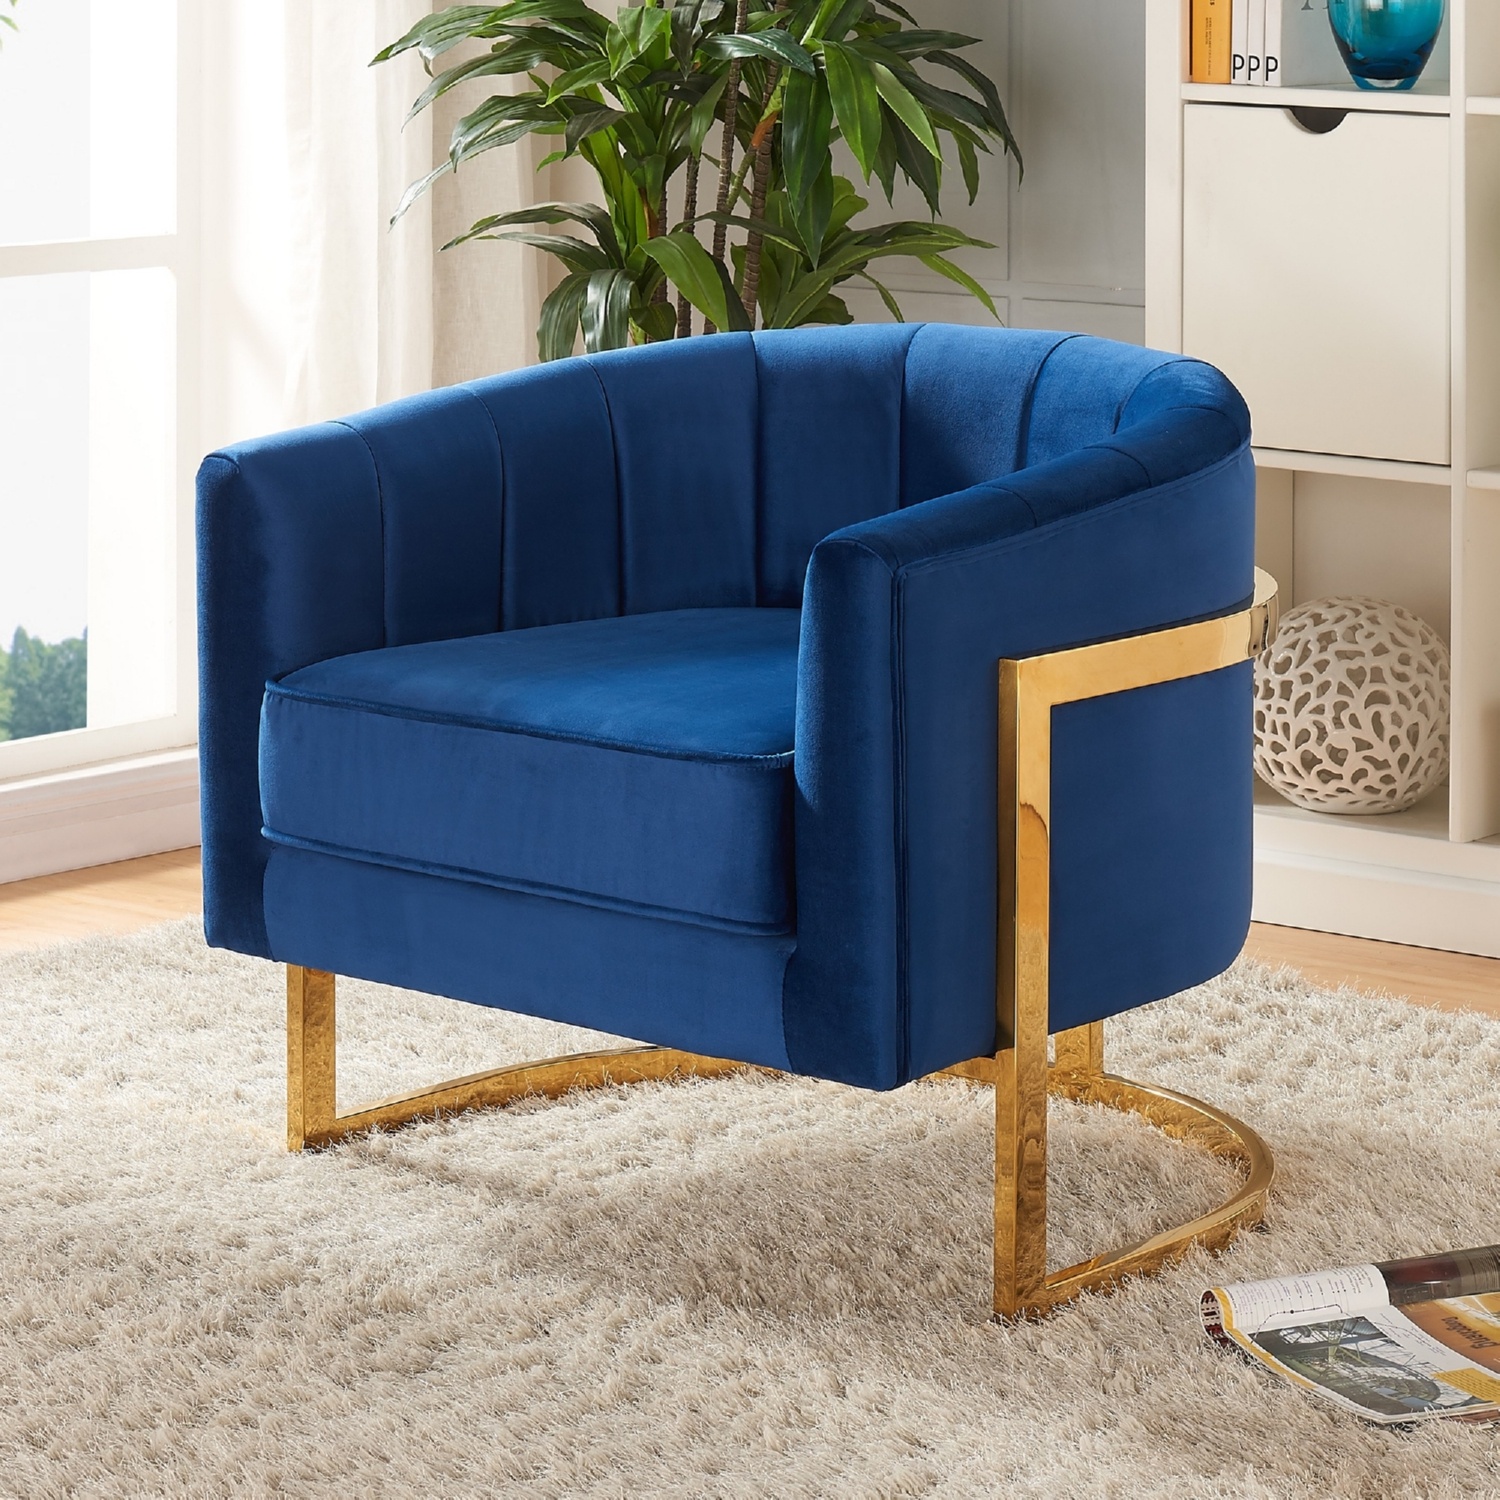 Meridian Furniture Carter Navy Velvet Accent Chair On Gold Stainless Base  W/ Round Back